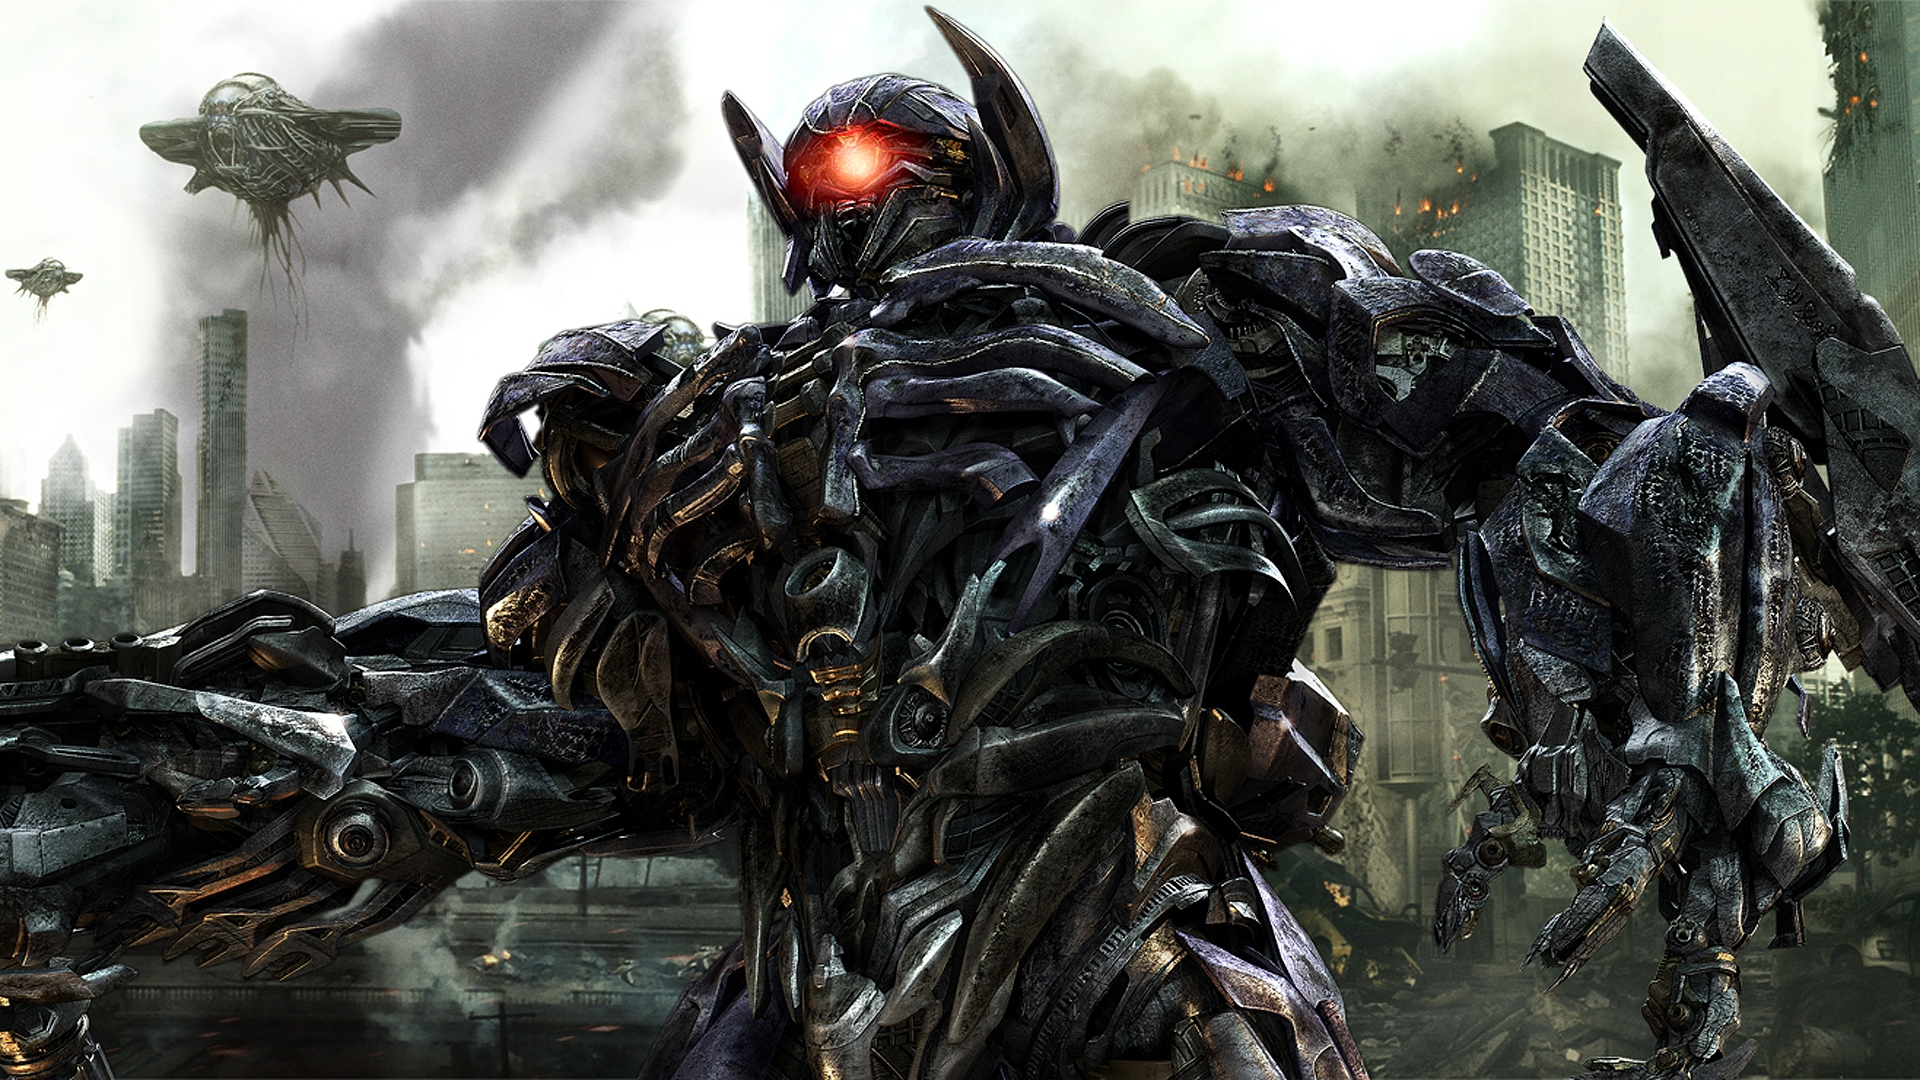 32612 download wallpaper Cinema, Transformers screensavers and pictures for free